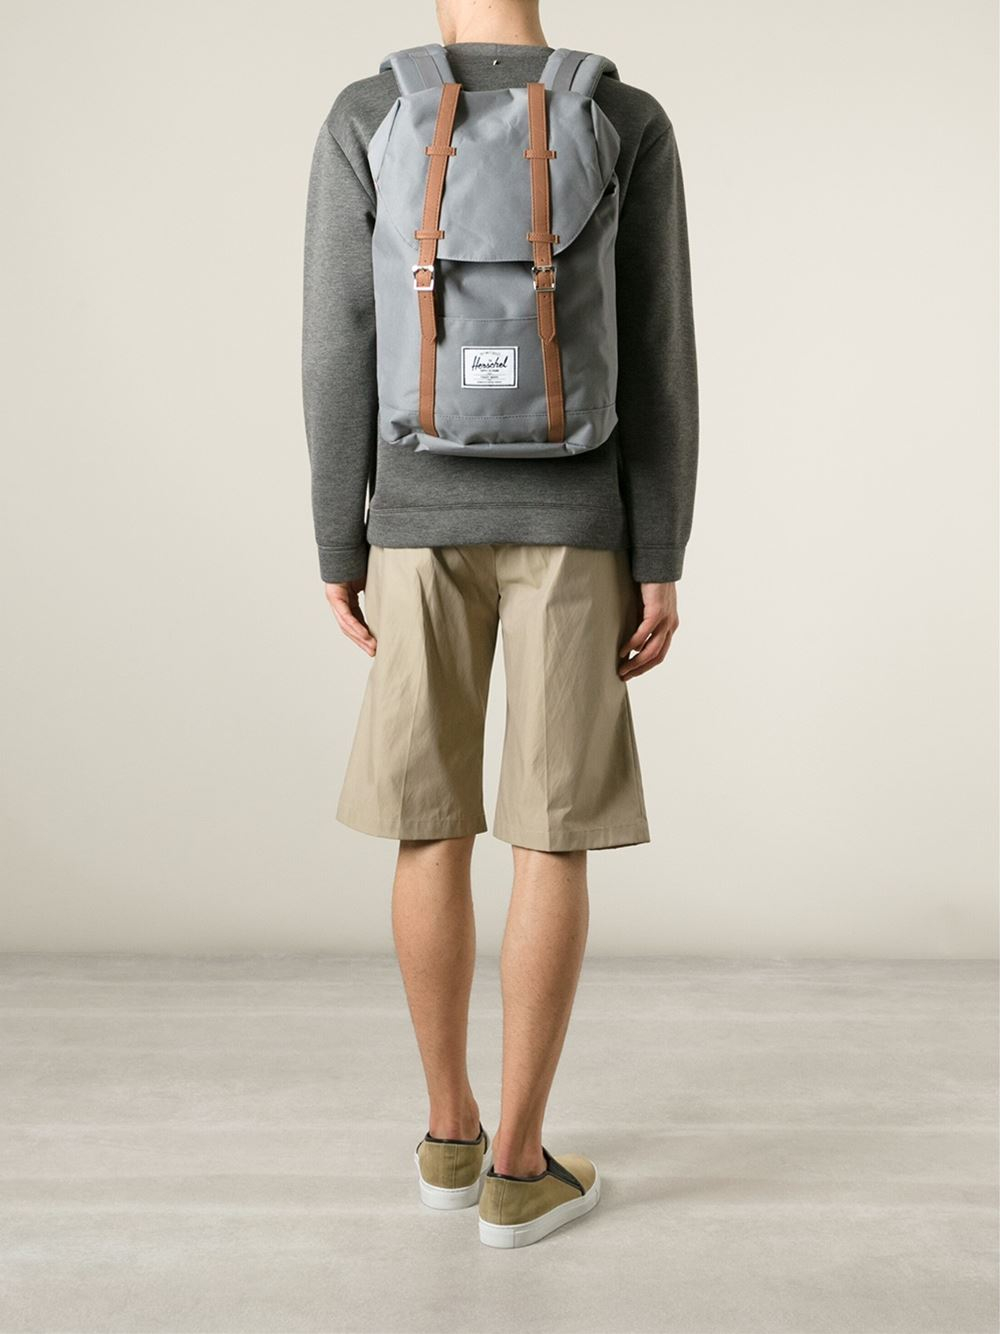 herschel-supply-co-grey-retreat-backpack-gray купить в украине